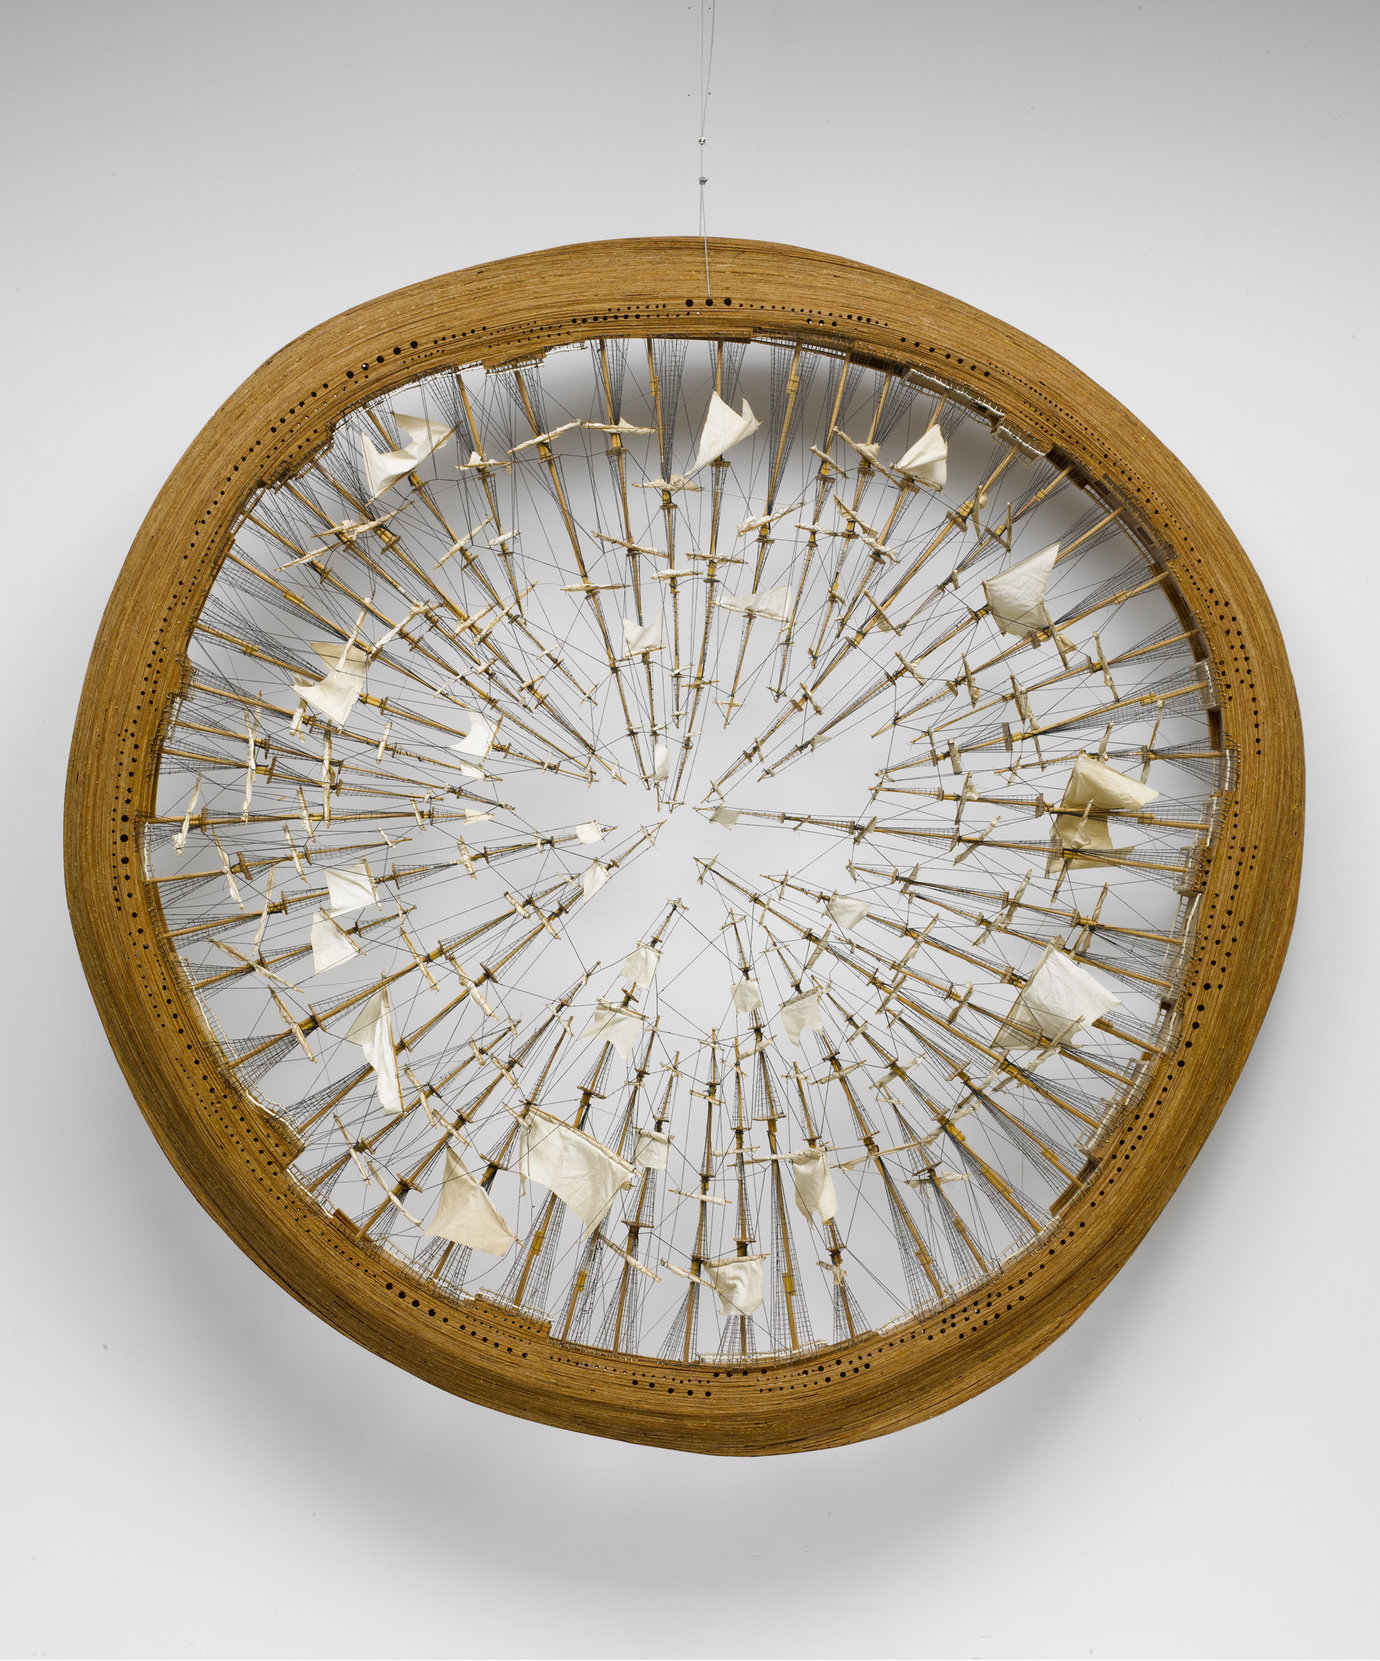 ", 1995. Fabric, string, and wood, 90"" (228.6 cm) diameter x 10"" (25.4 cm)."